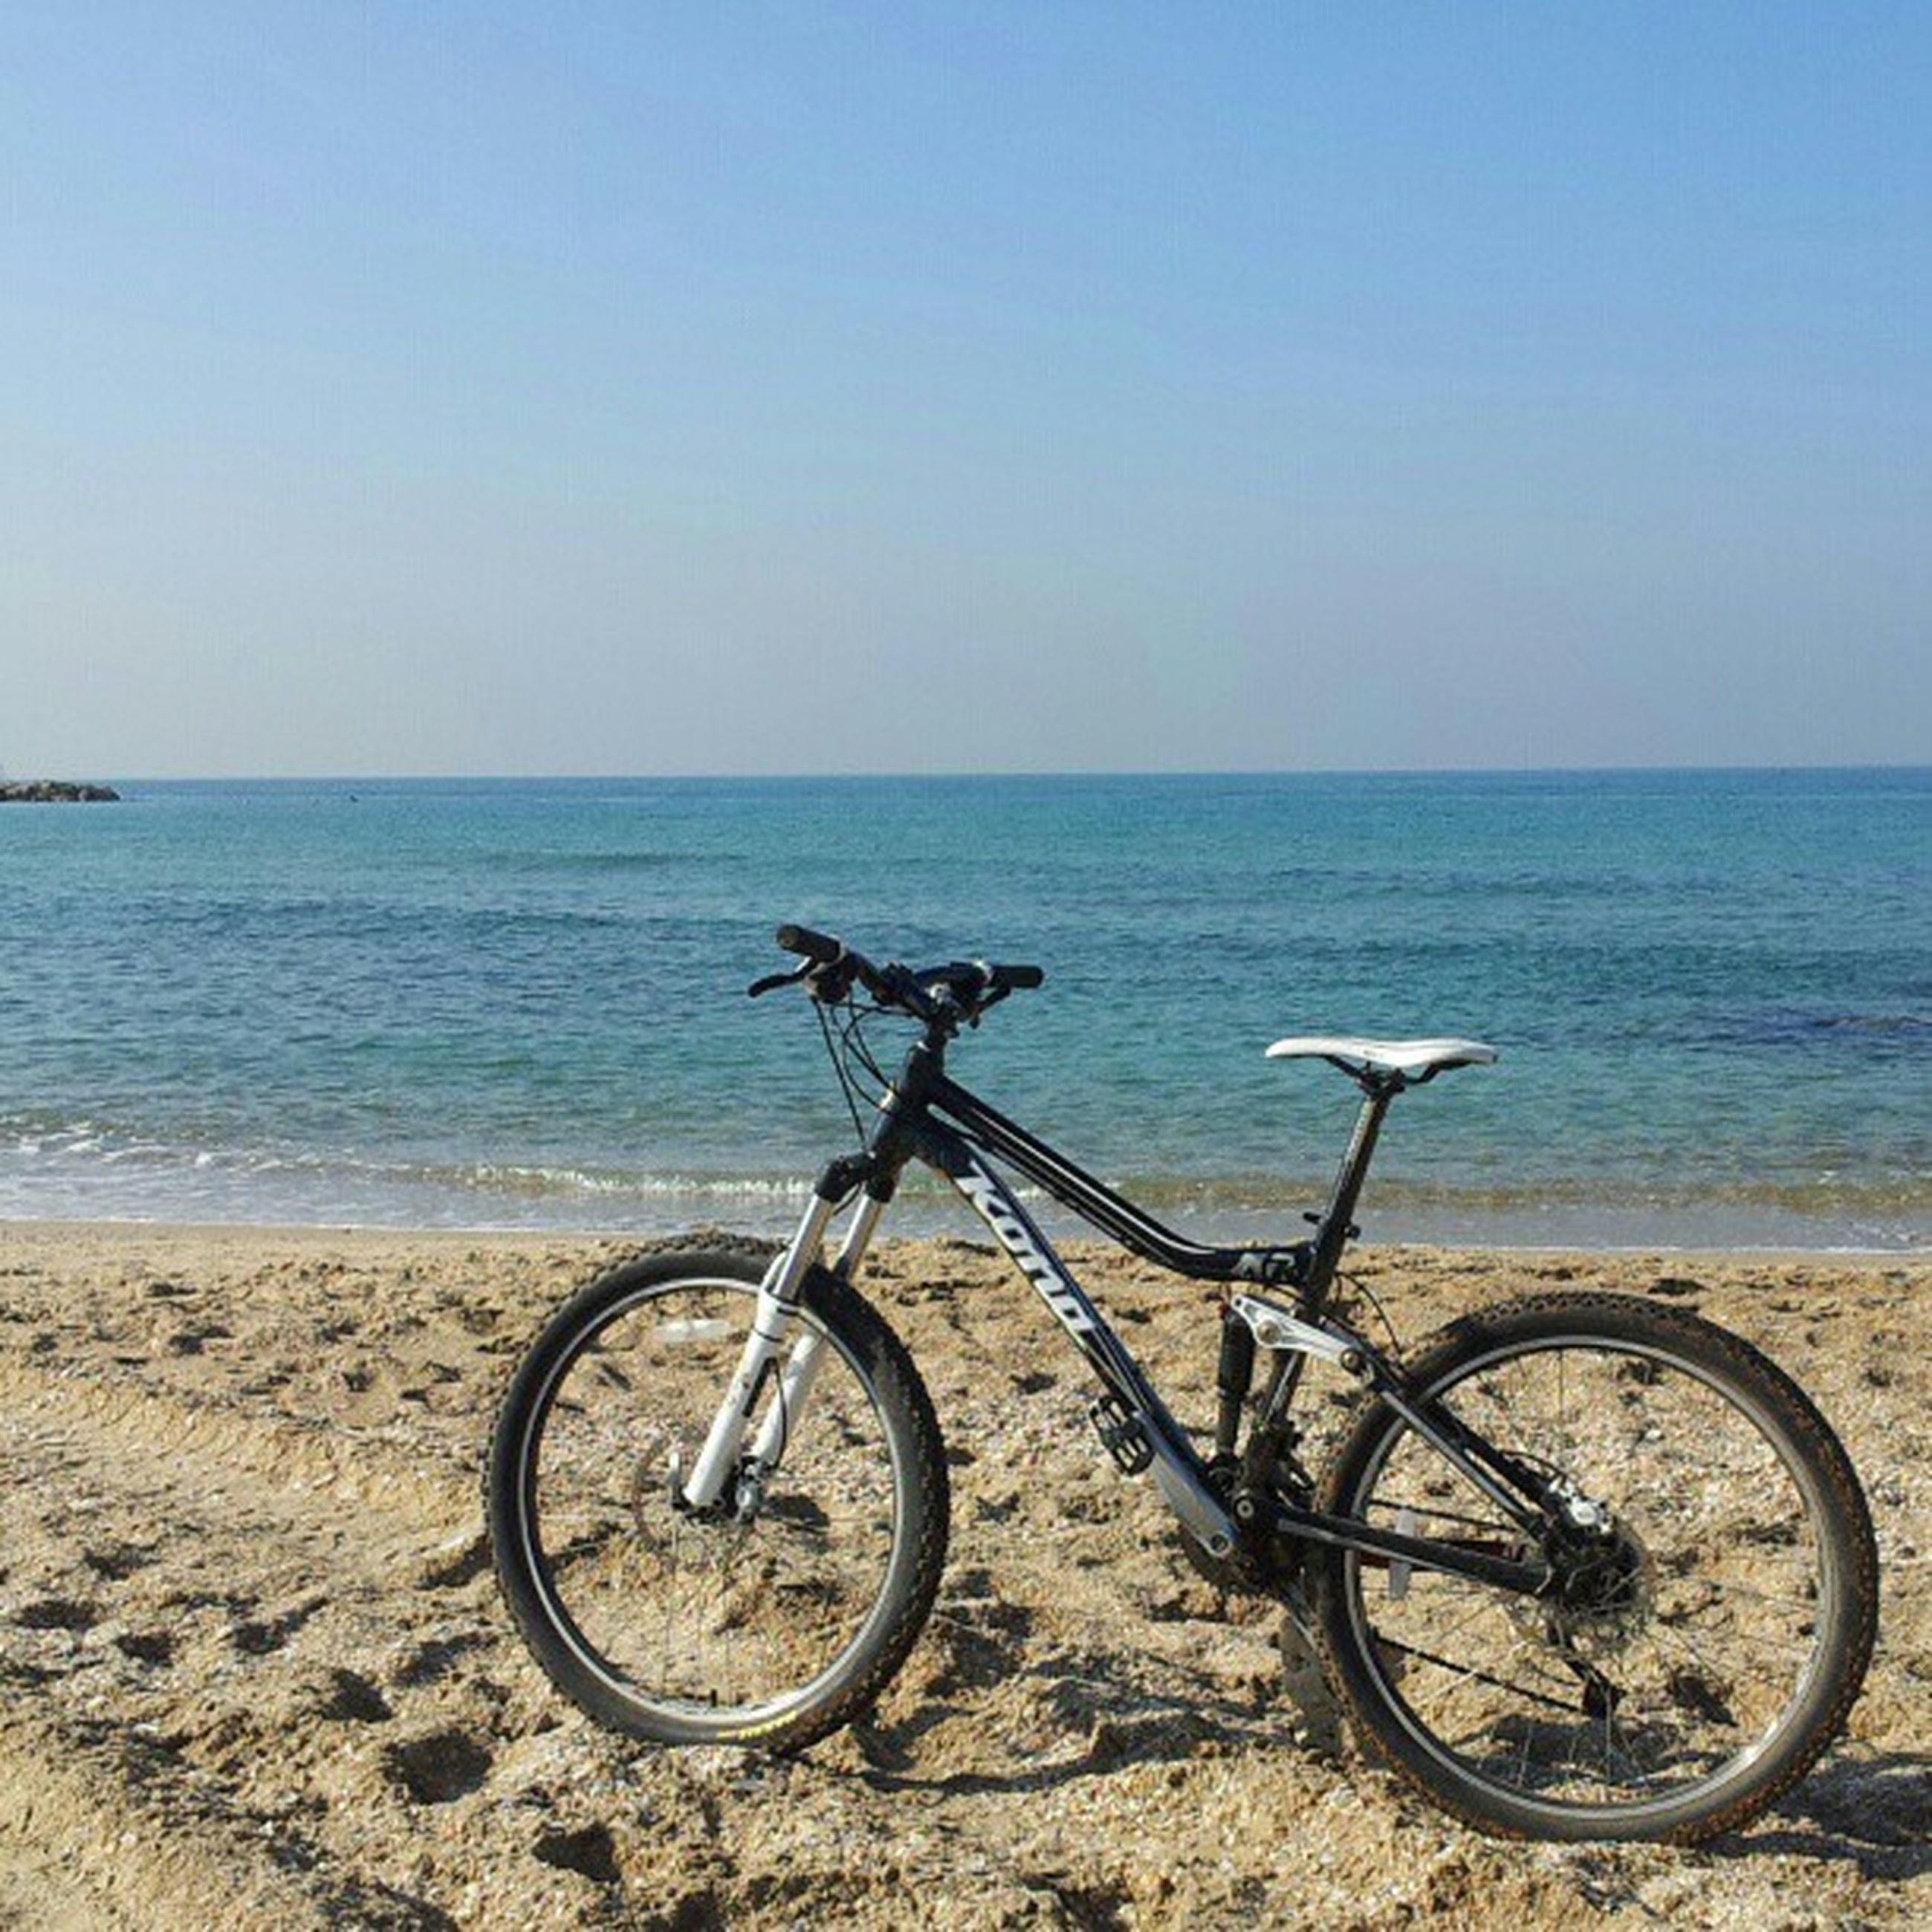 bicycle, transportation, sea, horizon over water, mode of transport, water, stationary, land vehicle, beach, parking, parked, tranquility, tranquil scene, blue, shore, copy space, beauty in nature, scenics, nature, clear sky